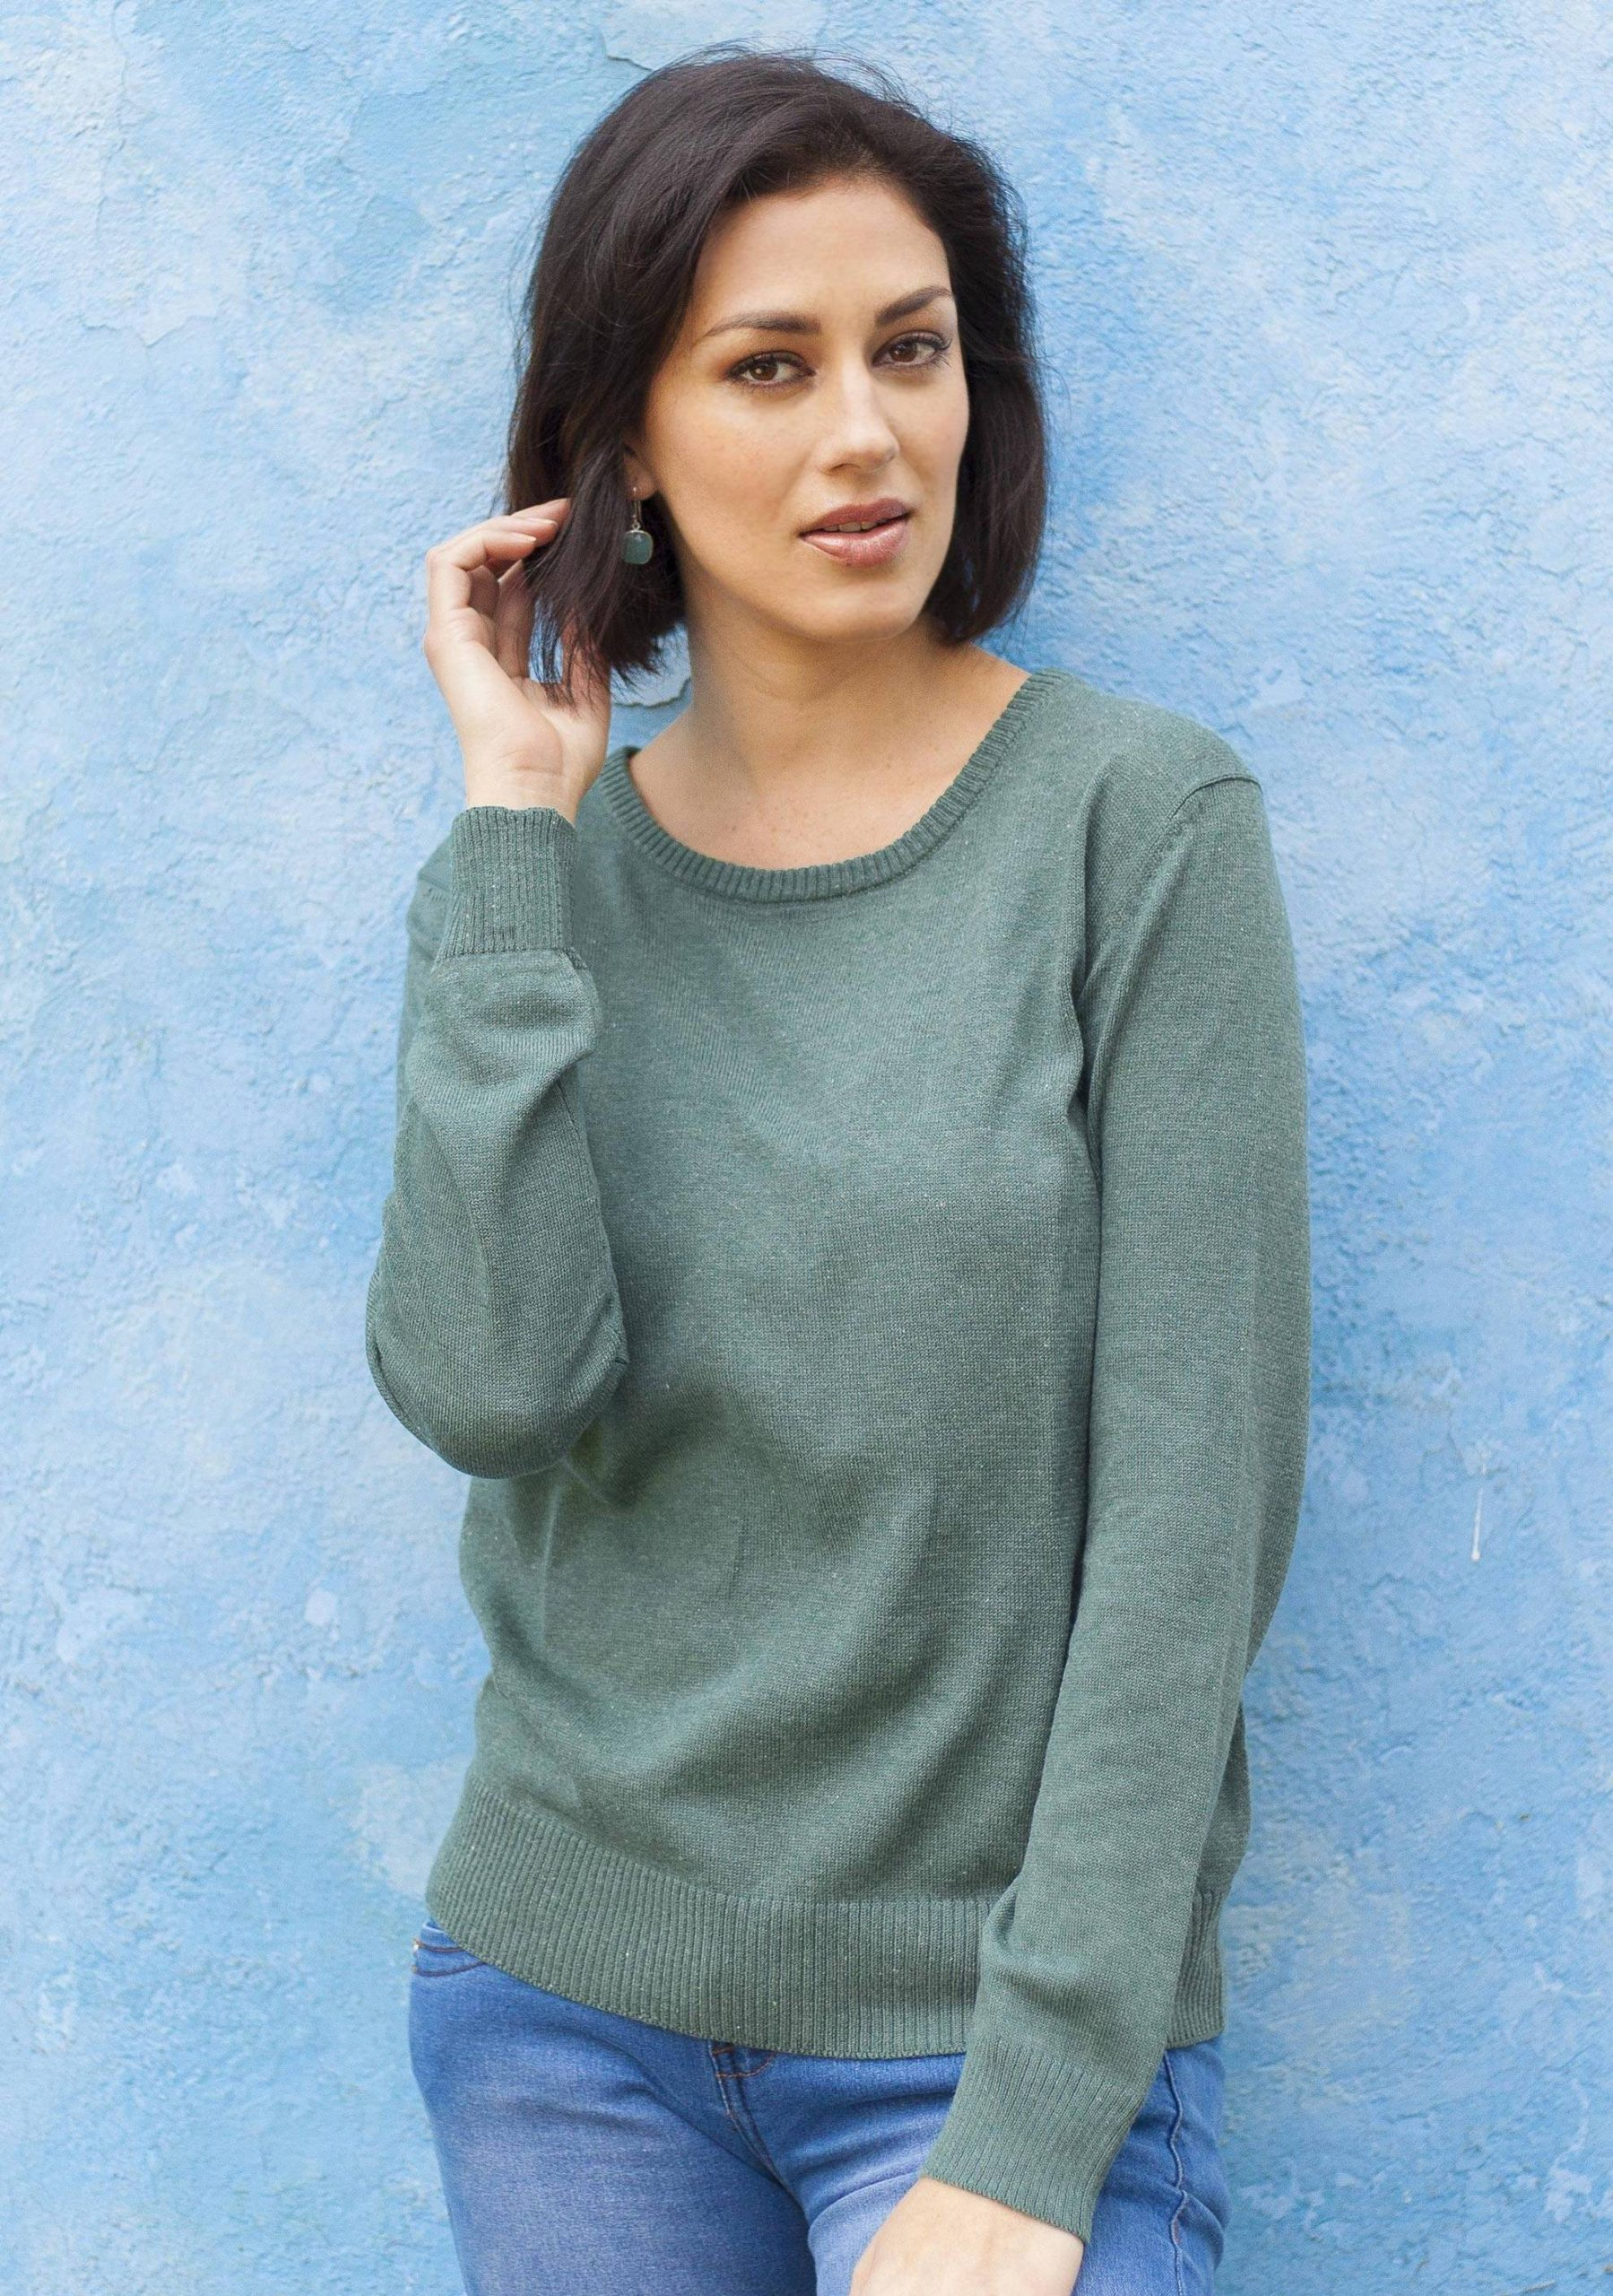 """Knit Cotton Blend Pullover in Viridian from Peru, """"Warm Valley in Viridian"""" Fall Fashion"""